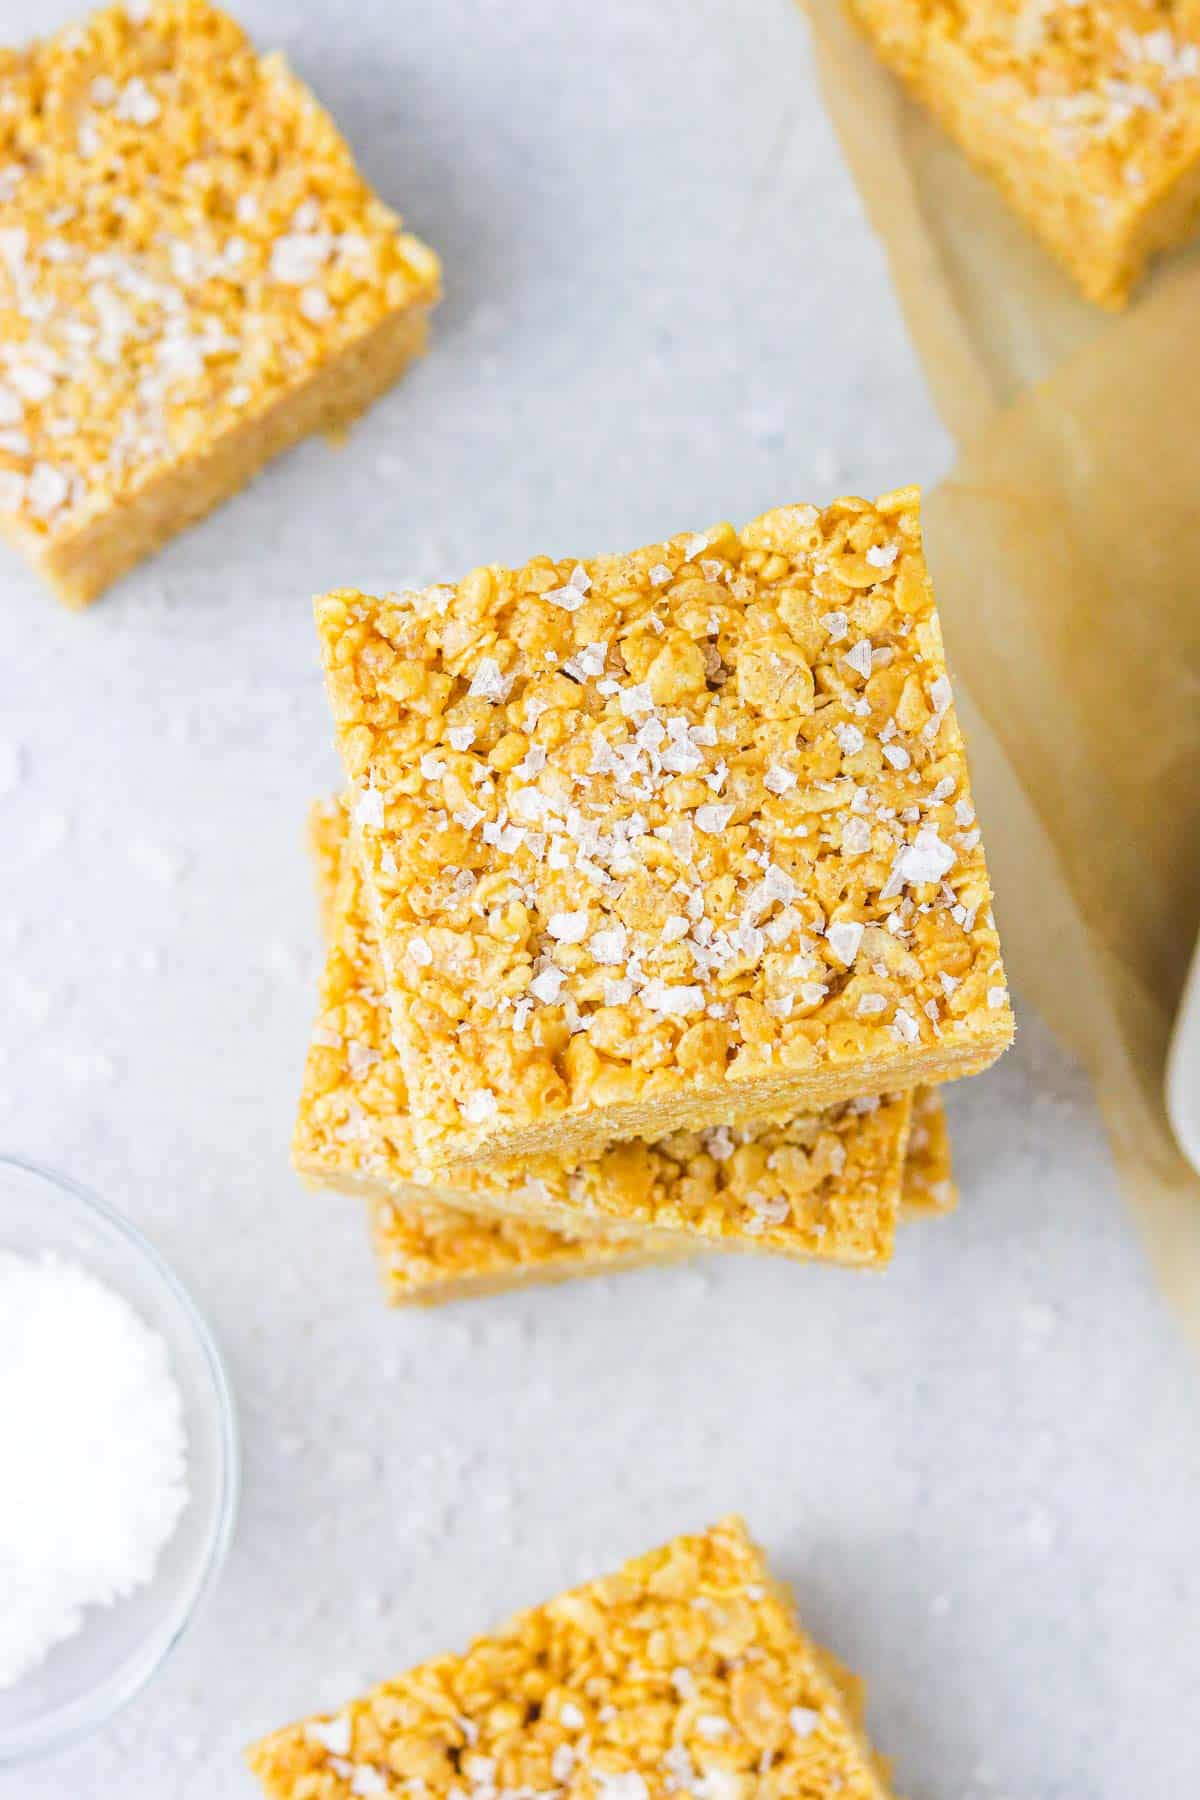 Top of a stack of Peanut butter rice krispie bars